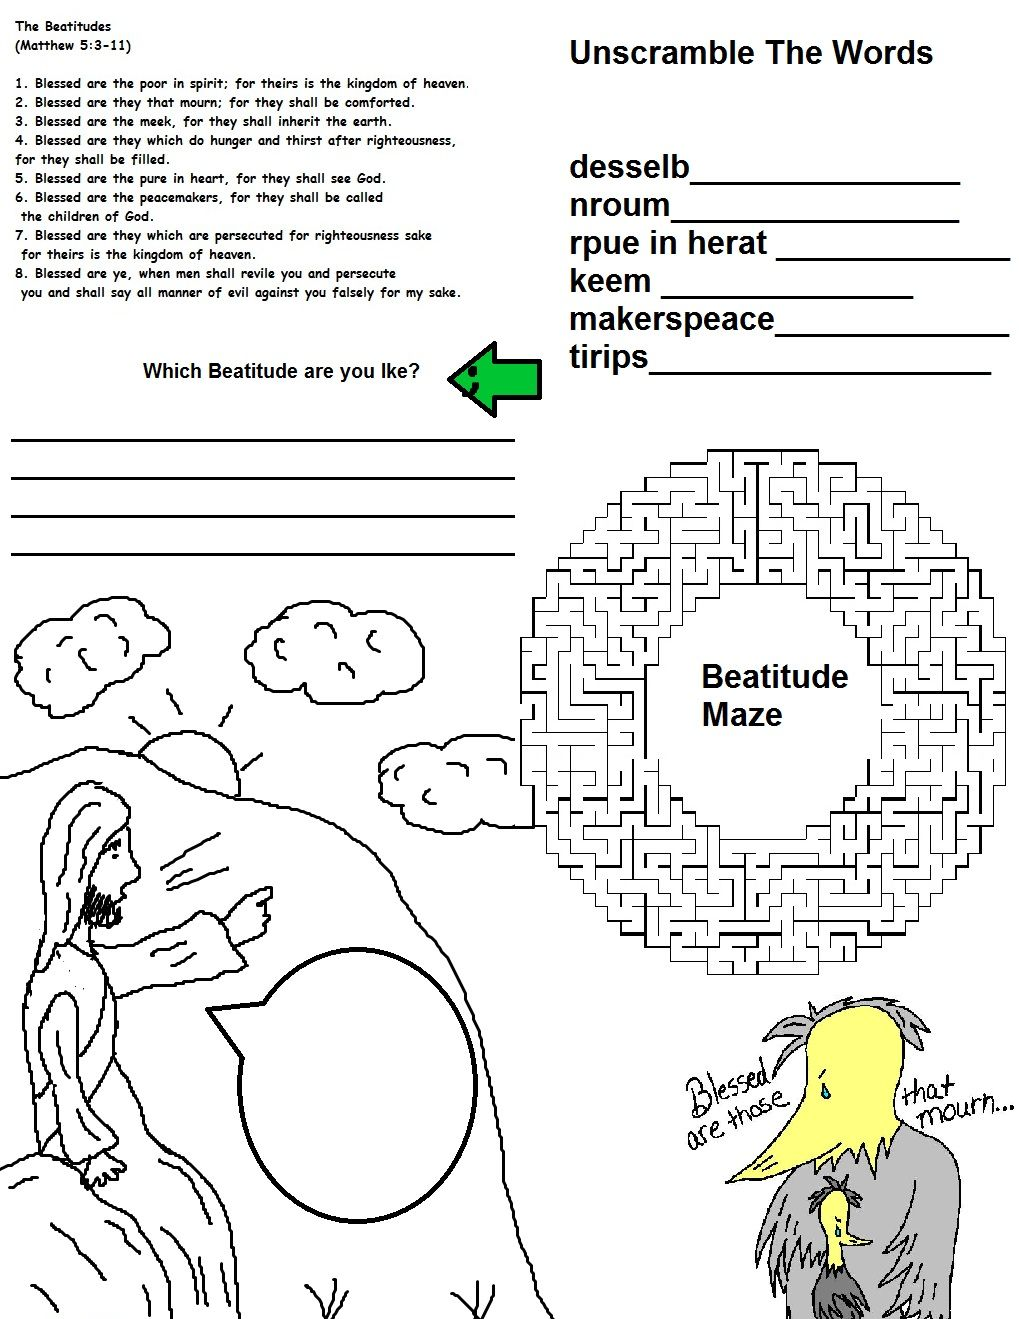 Worksheets Beatitudes Worksheet bthe beatitudes wild cards card 1 religious ed the cards